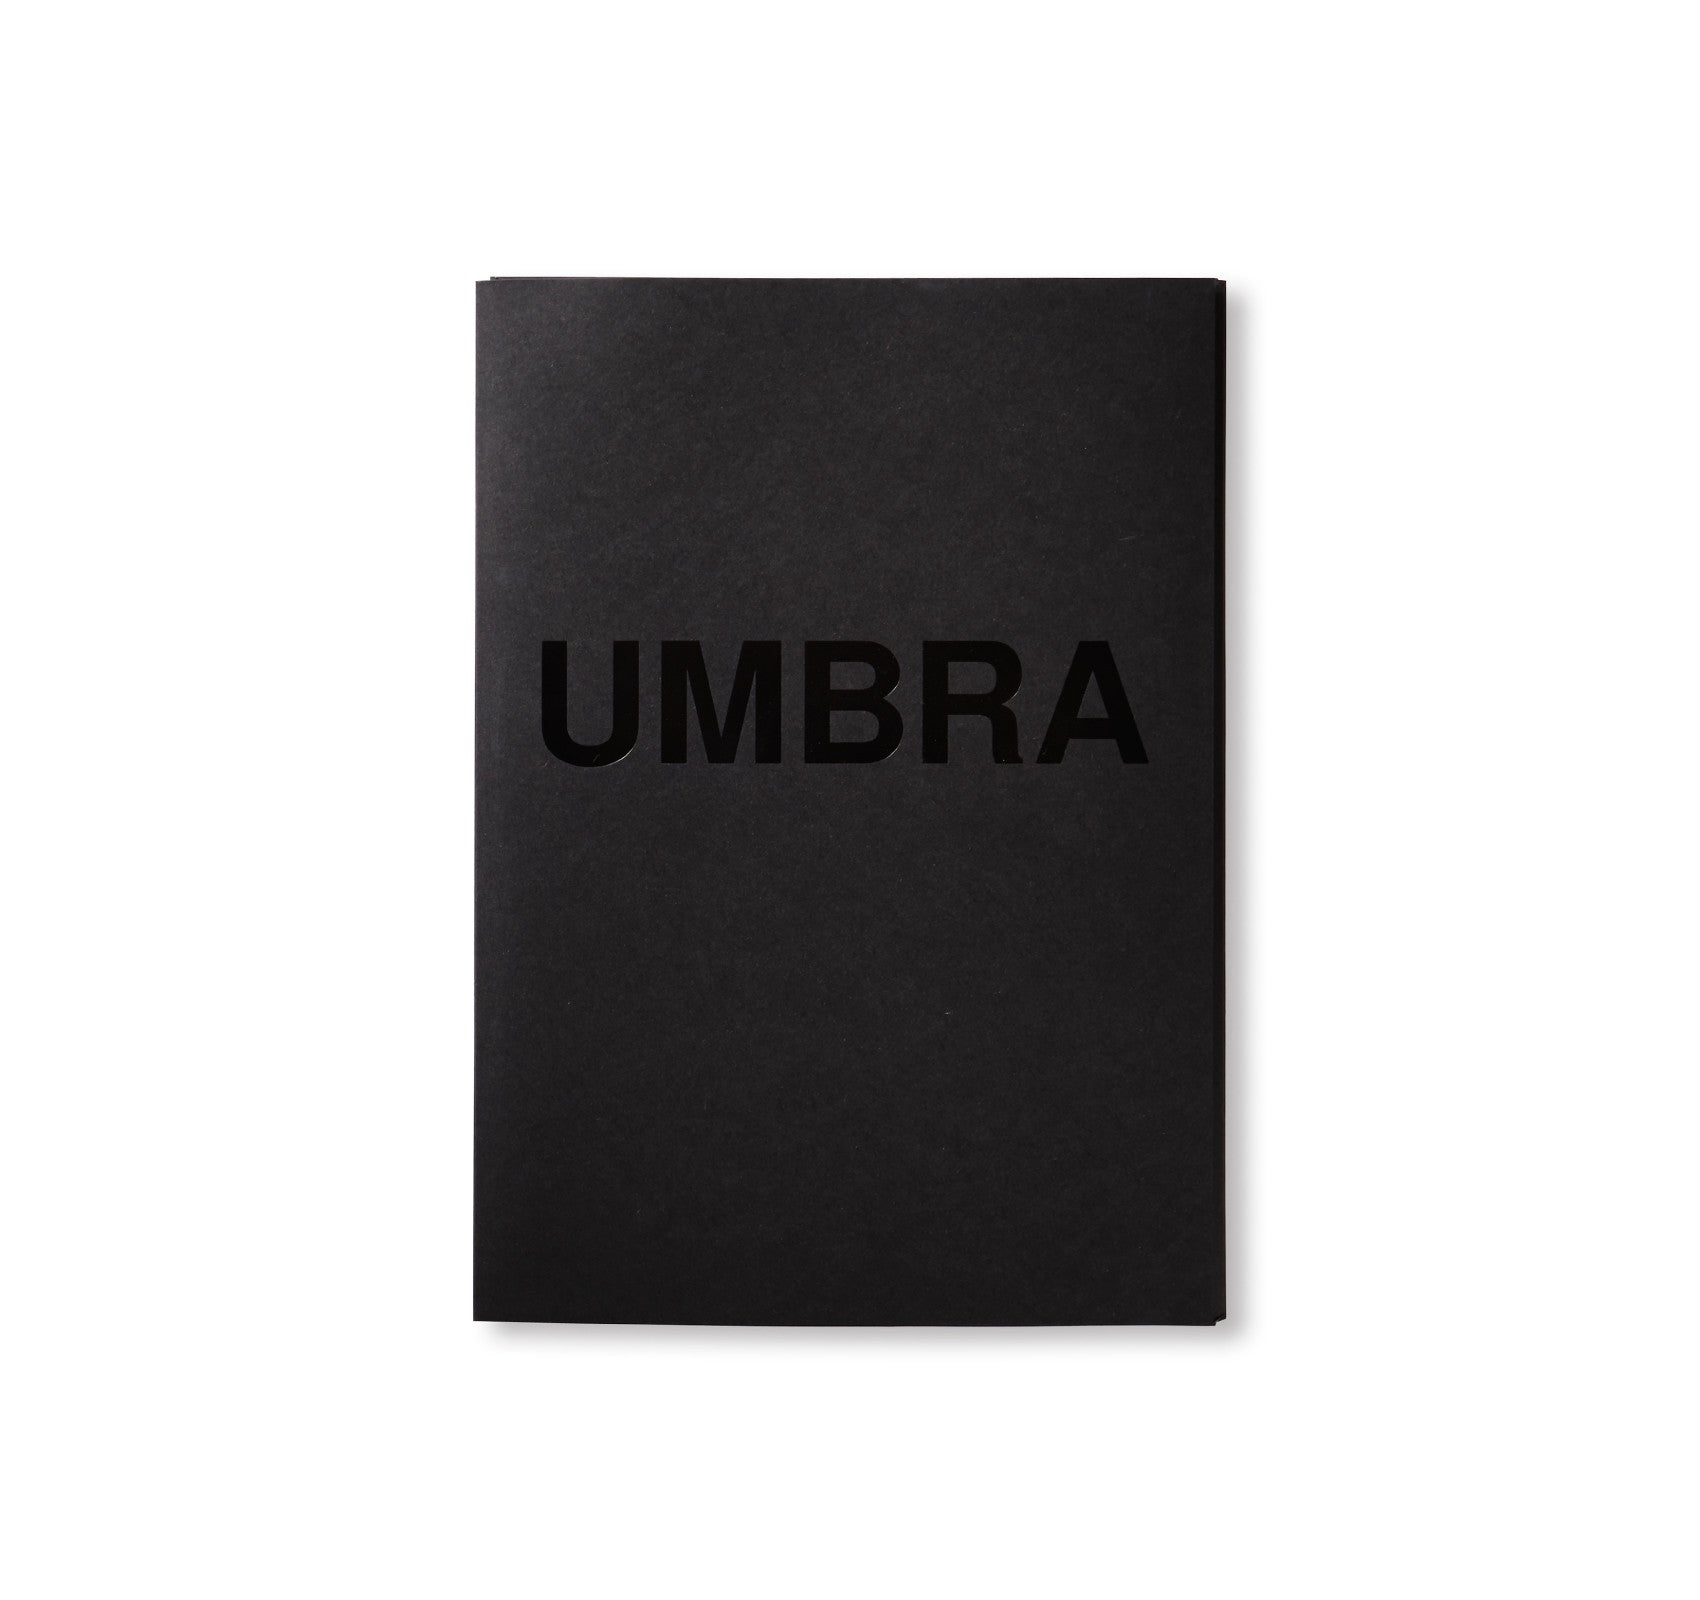 UMBRA by Viviane Sassen [SECOND EDITION / SIGNED]